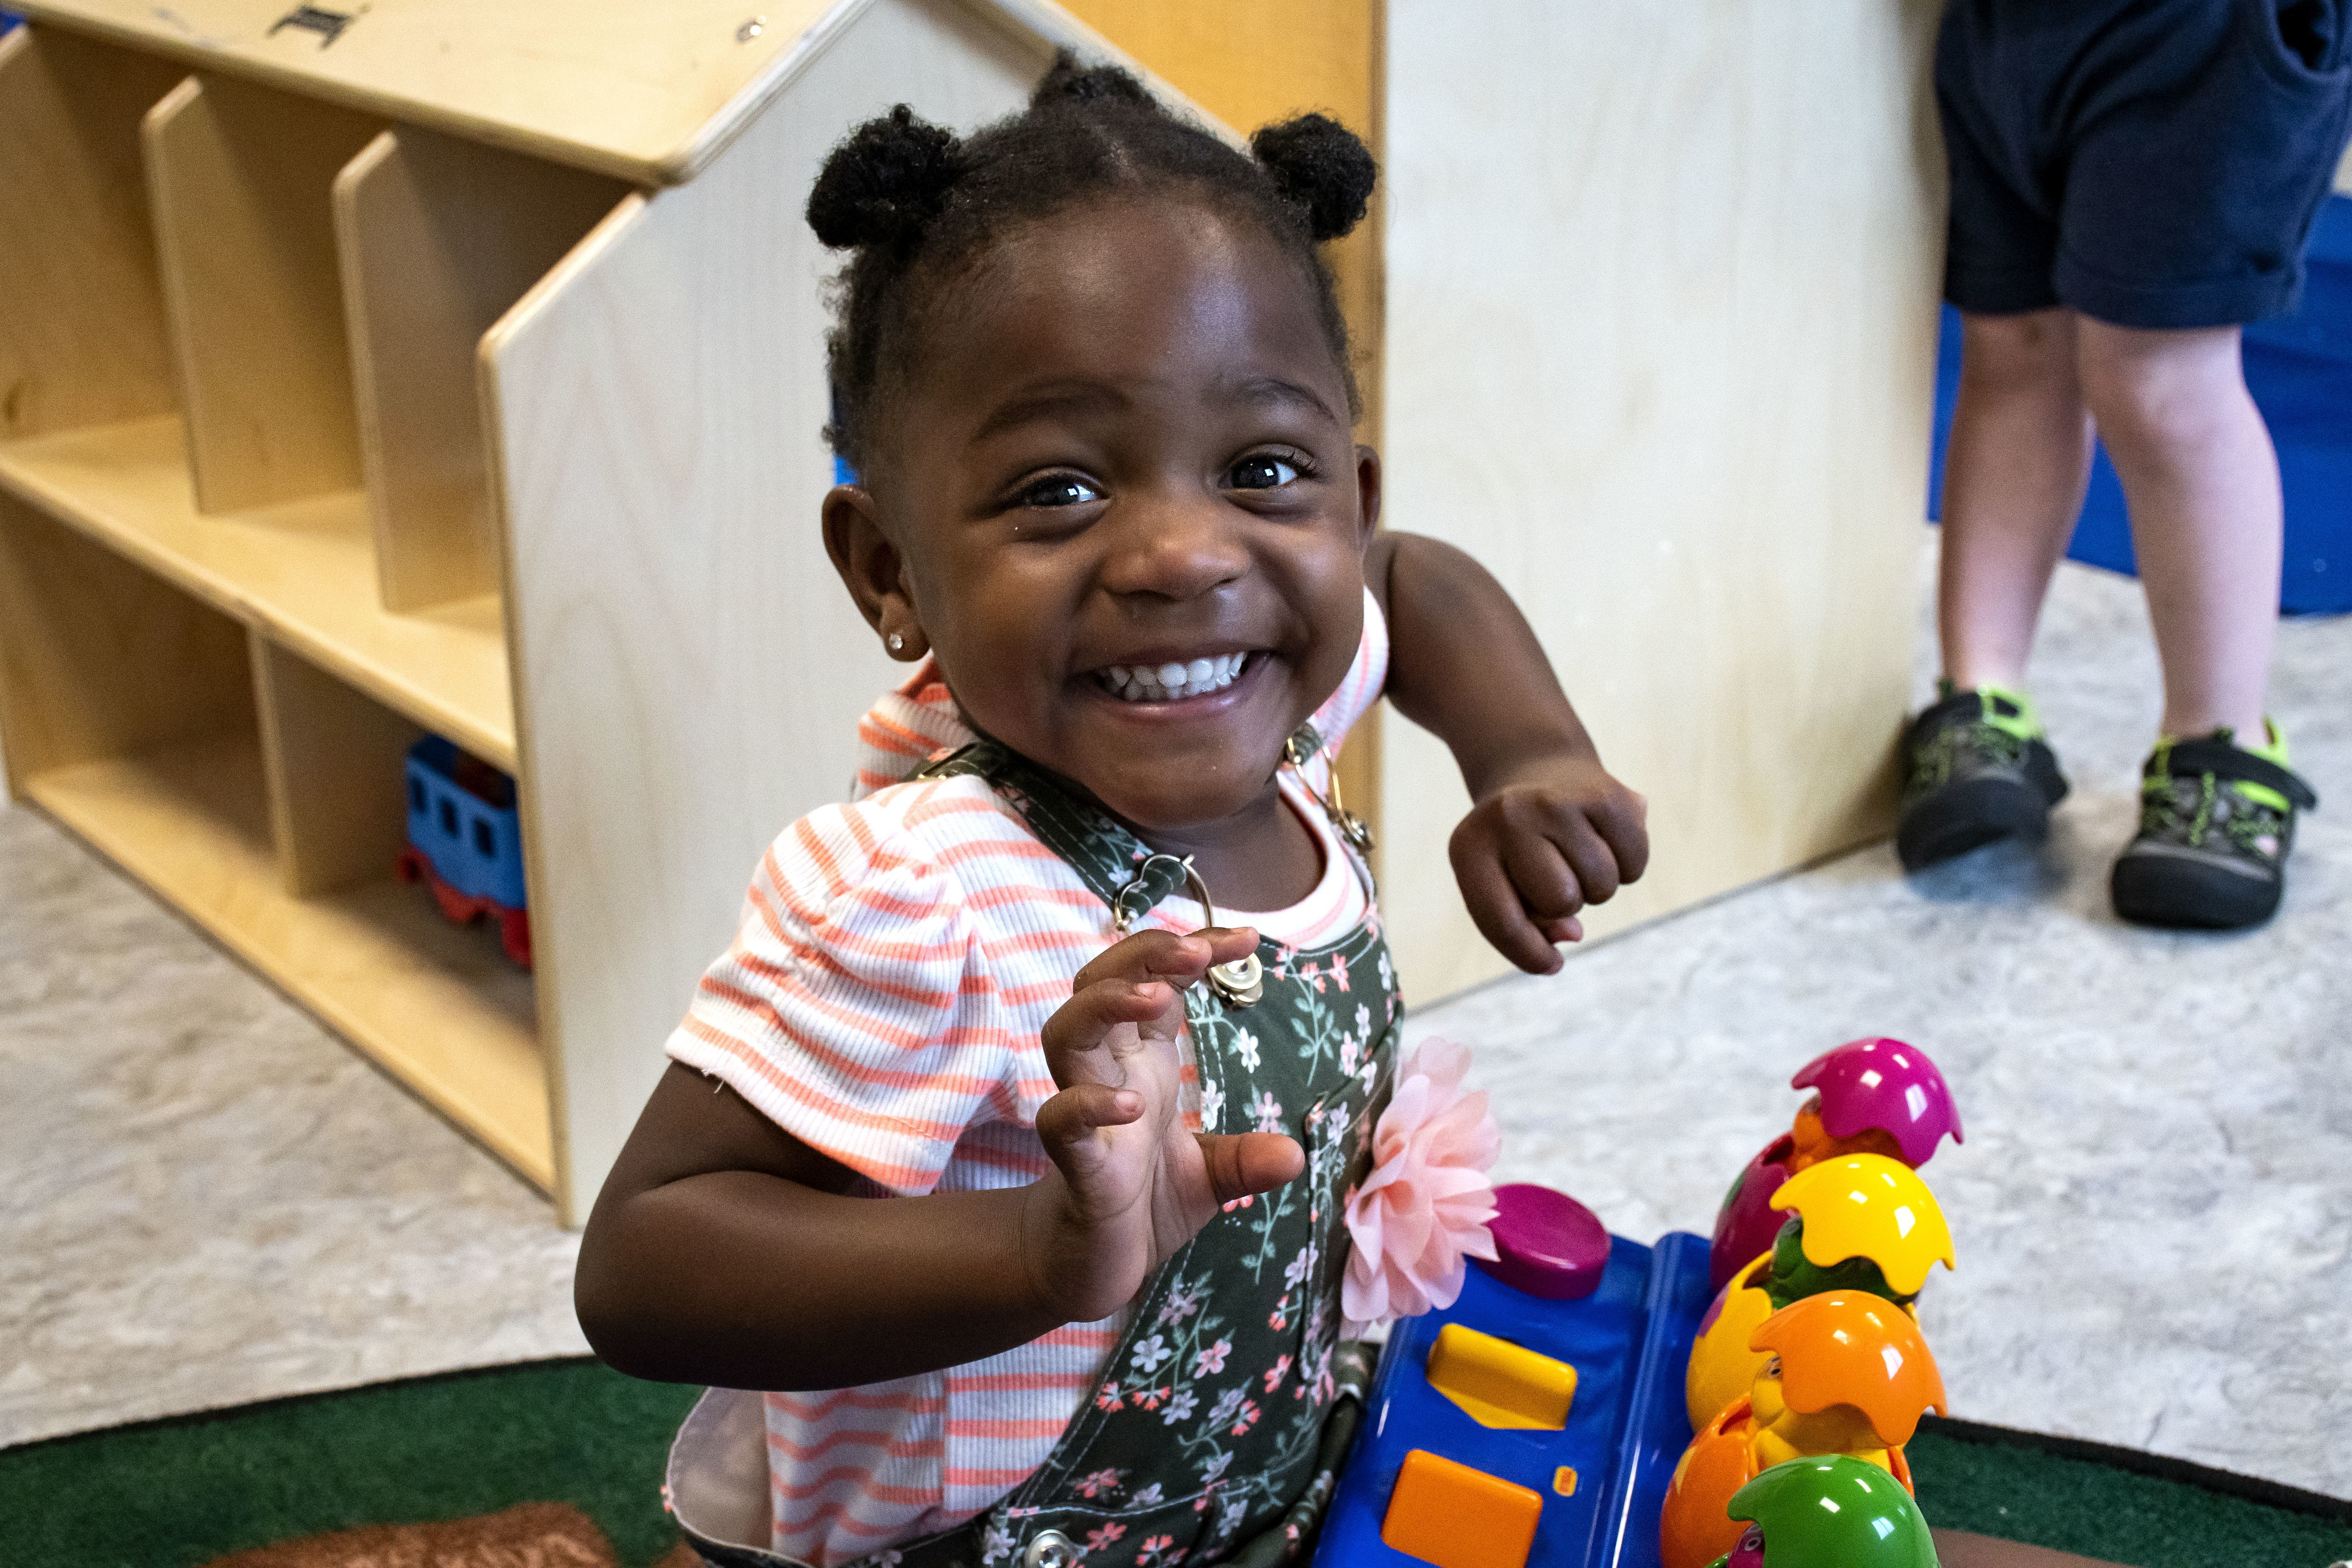 Child Care now available in Erie!